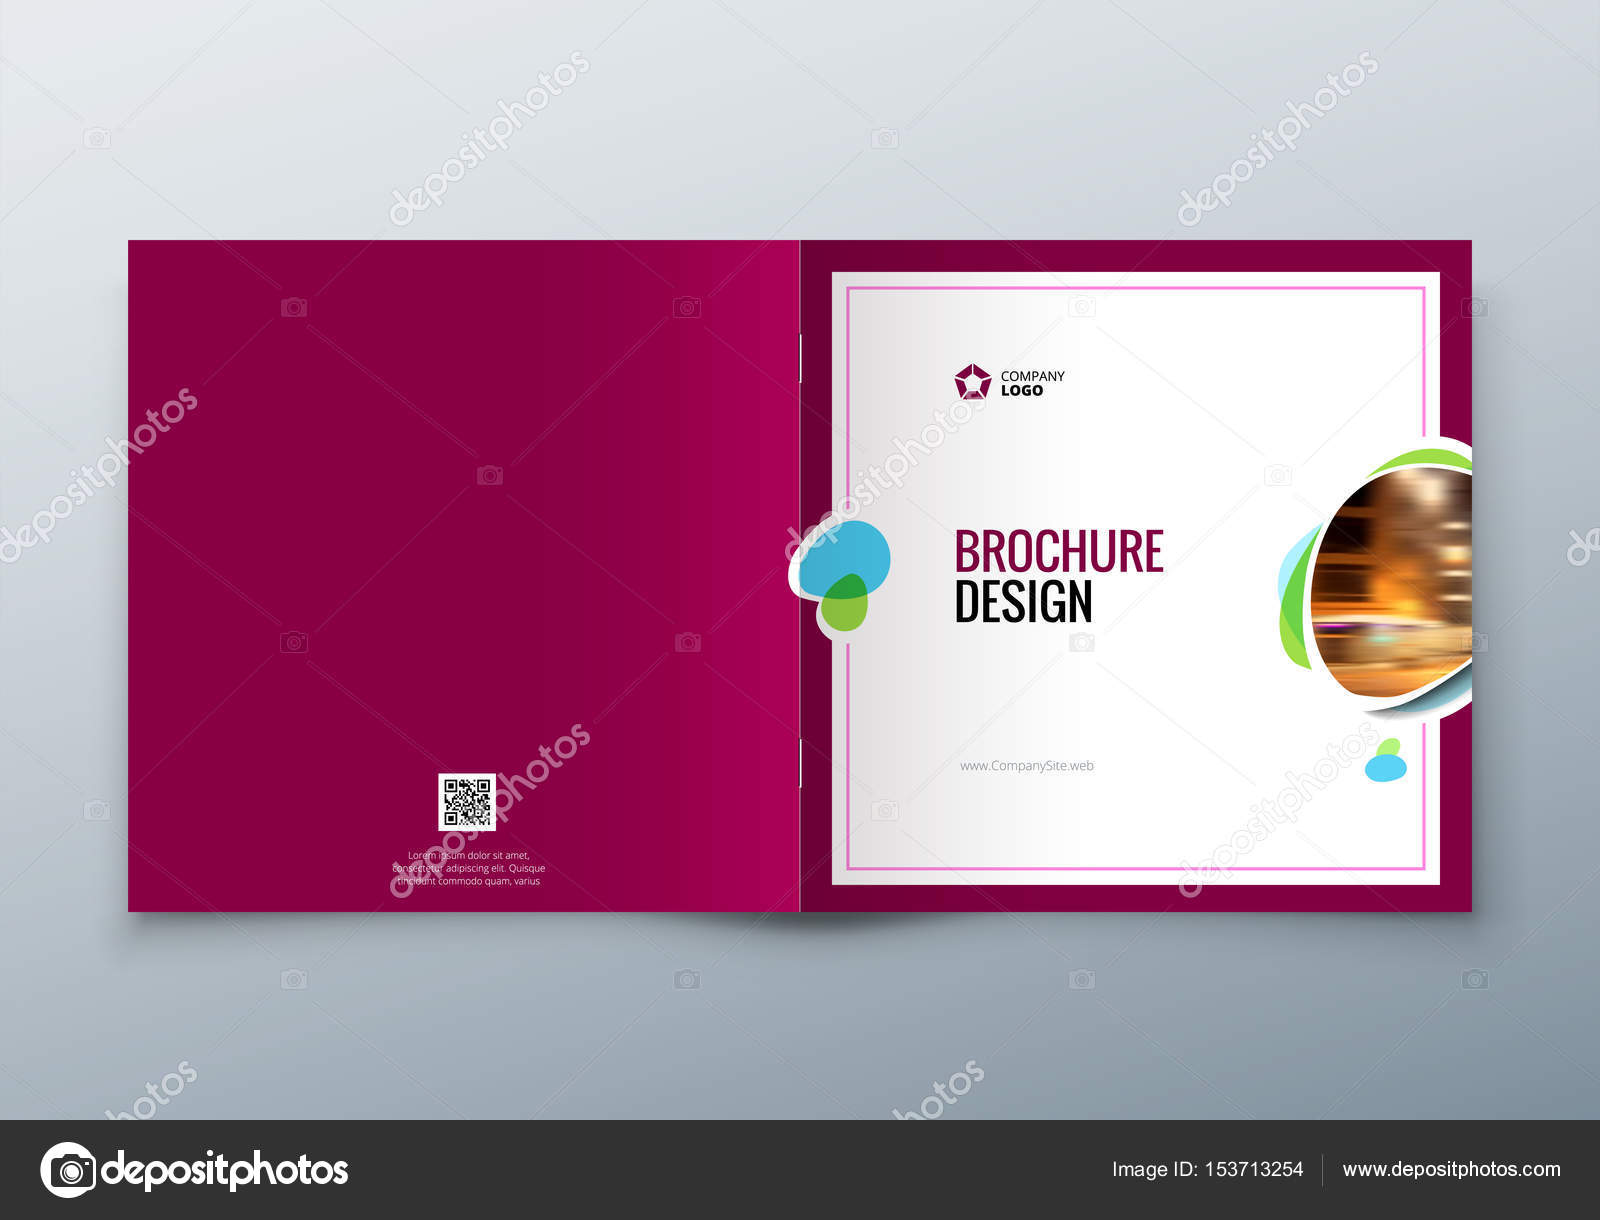 Square brochure design corporate business template for rectangle corporate business template for rectangle brochure report catalog magazine corporate business annual report cover brochure or flyer design vector by flashek Choice Image